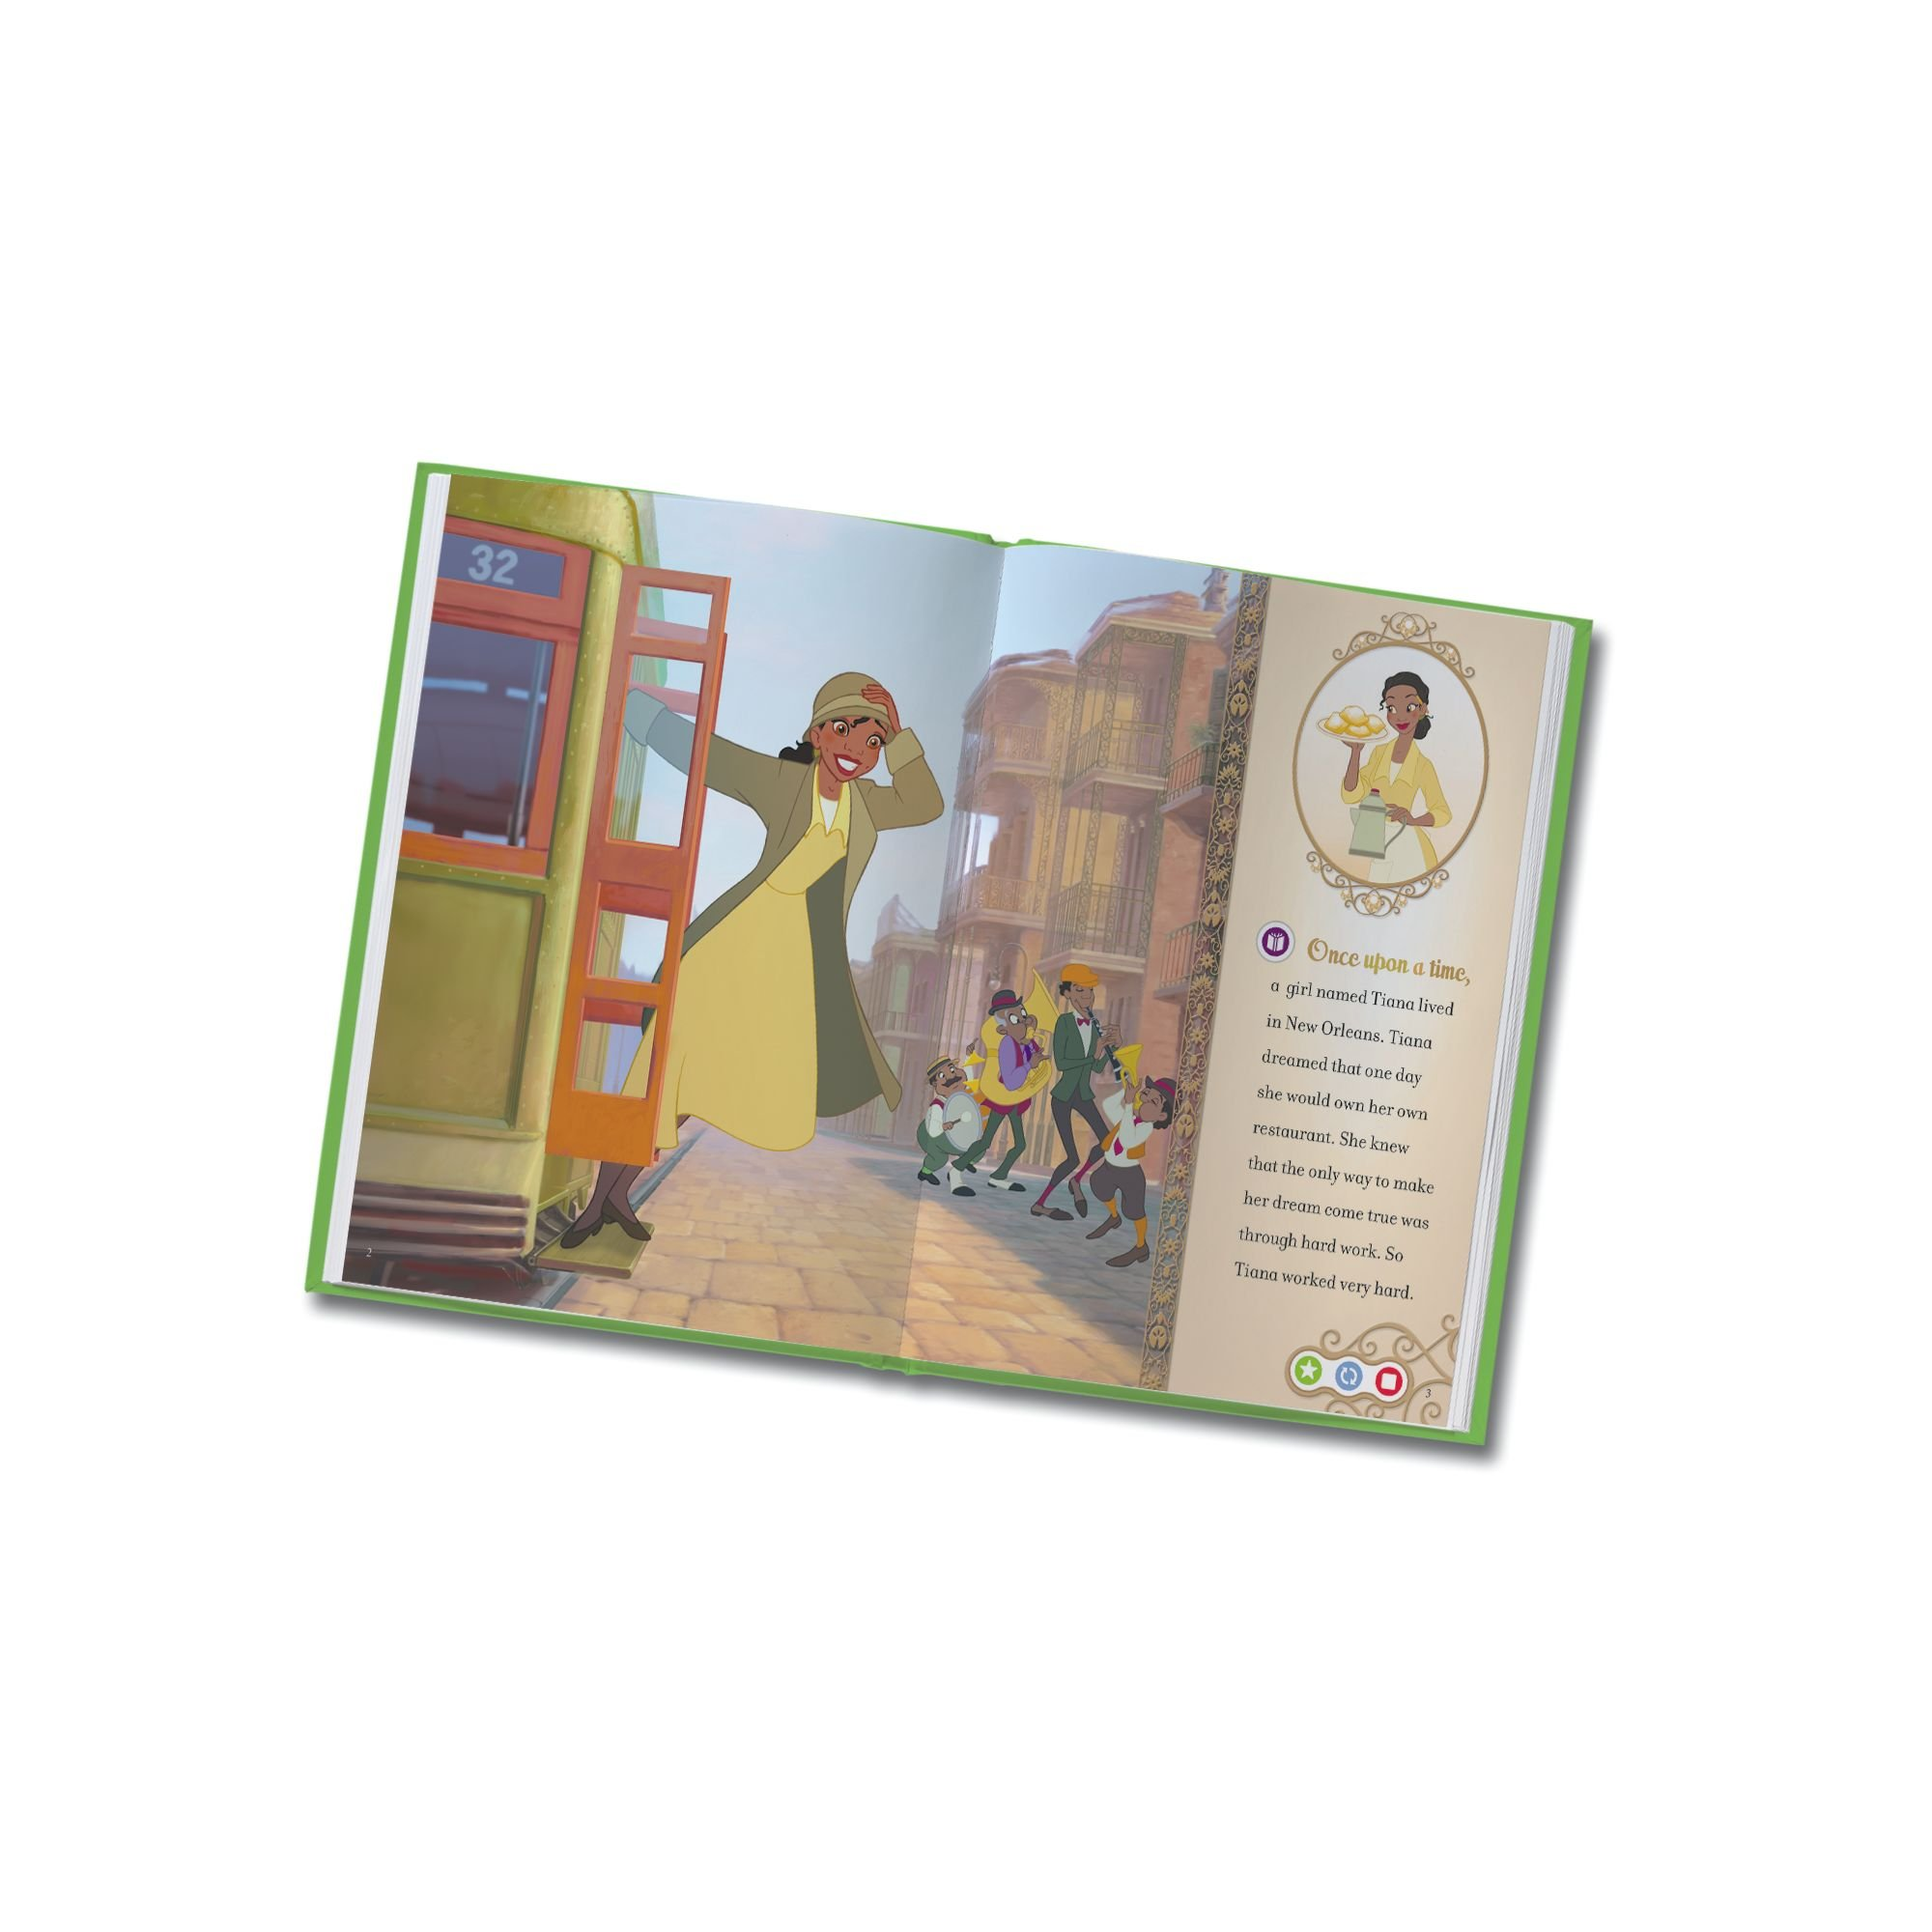 LeapFrog LeapReader Book: Disney Princess and the Frog (works with Tag) by LeapFrog (Image #6)